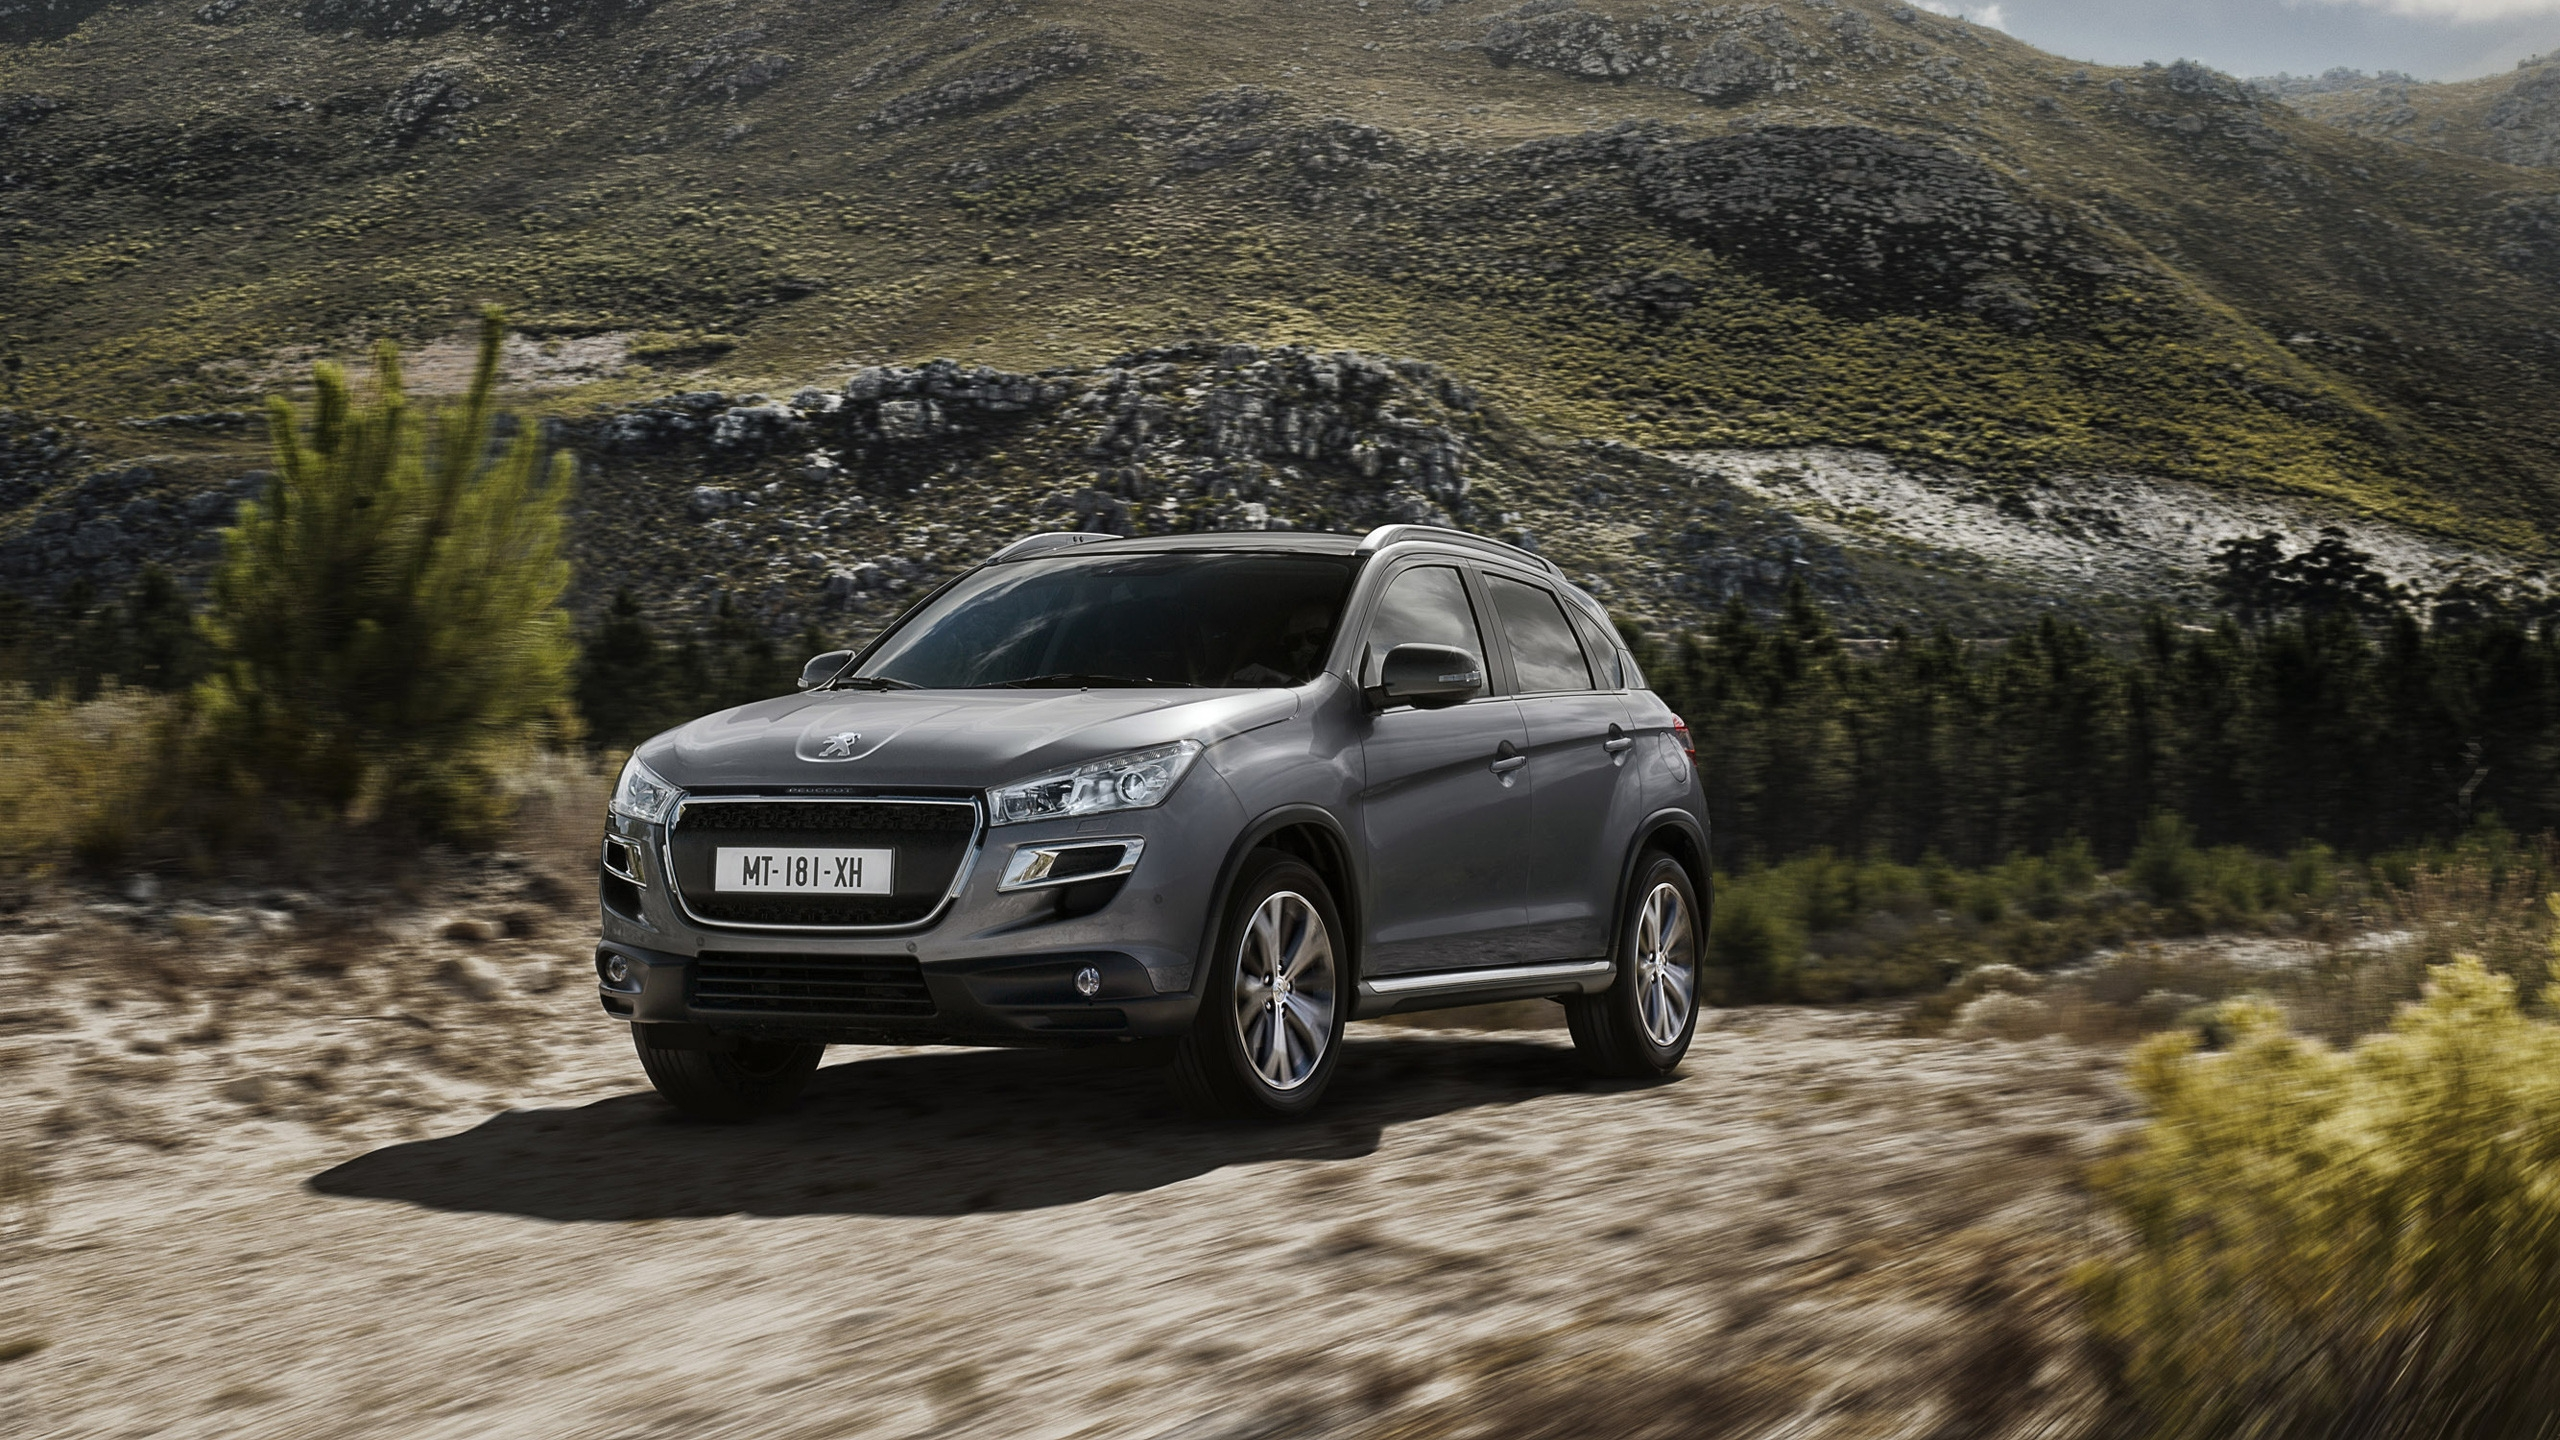 beautiful peugeot 4008 4x4 2560x1440 wallpaper